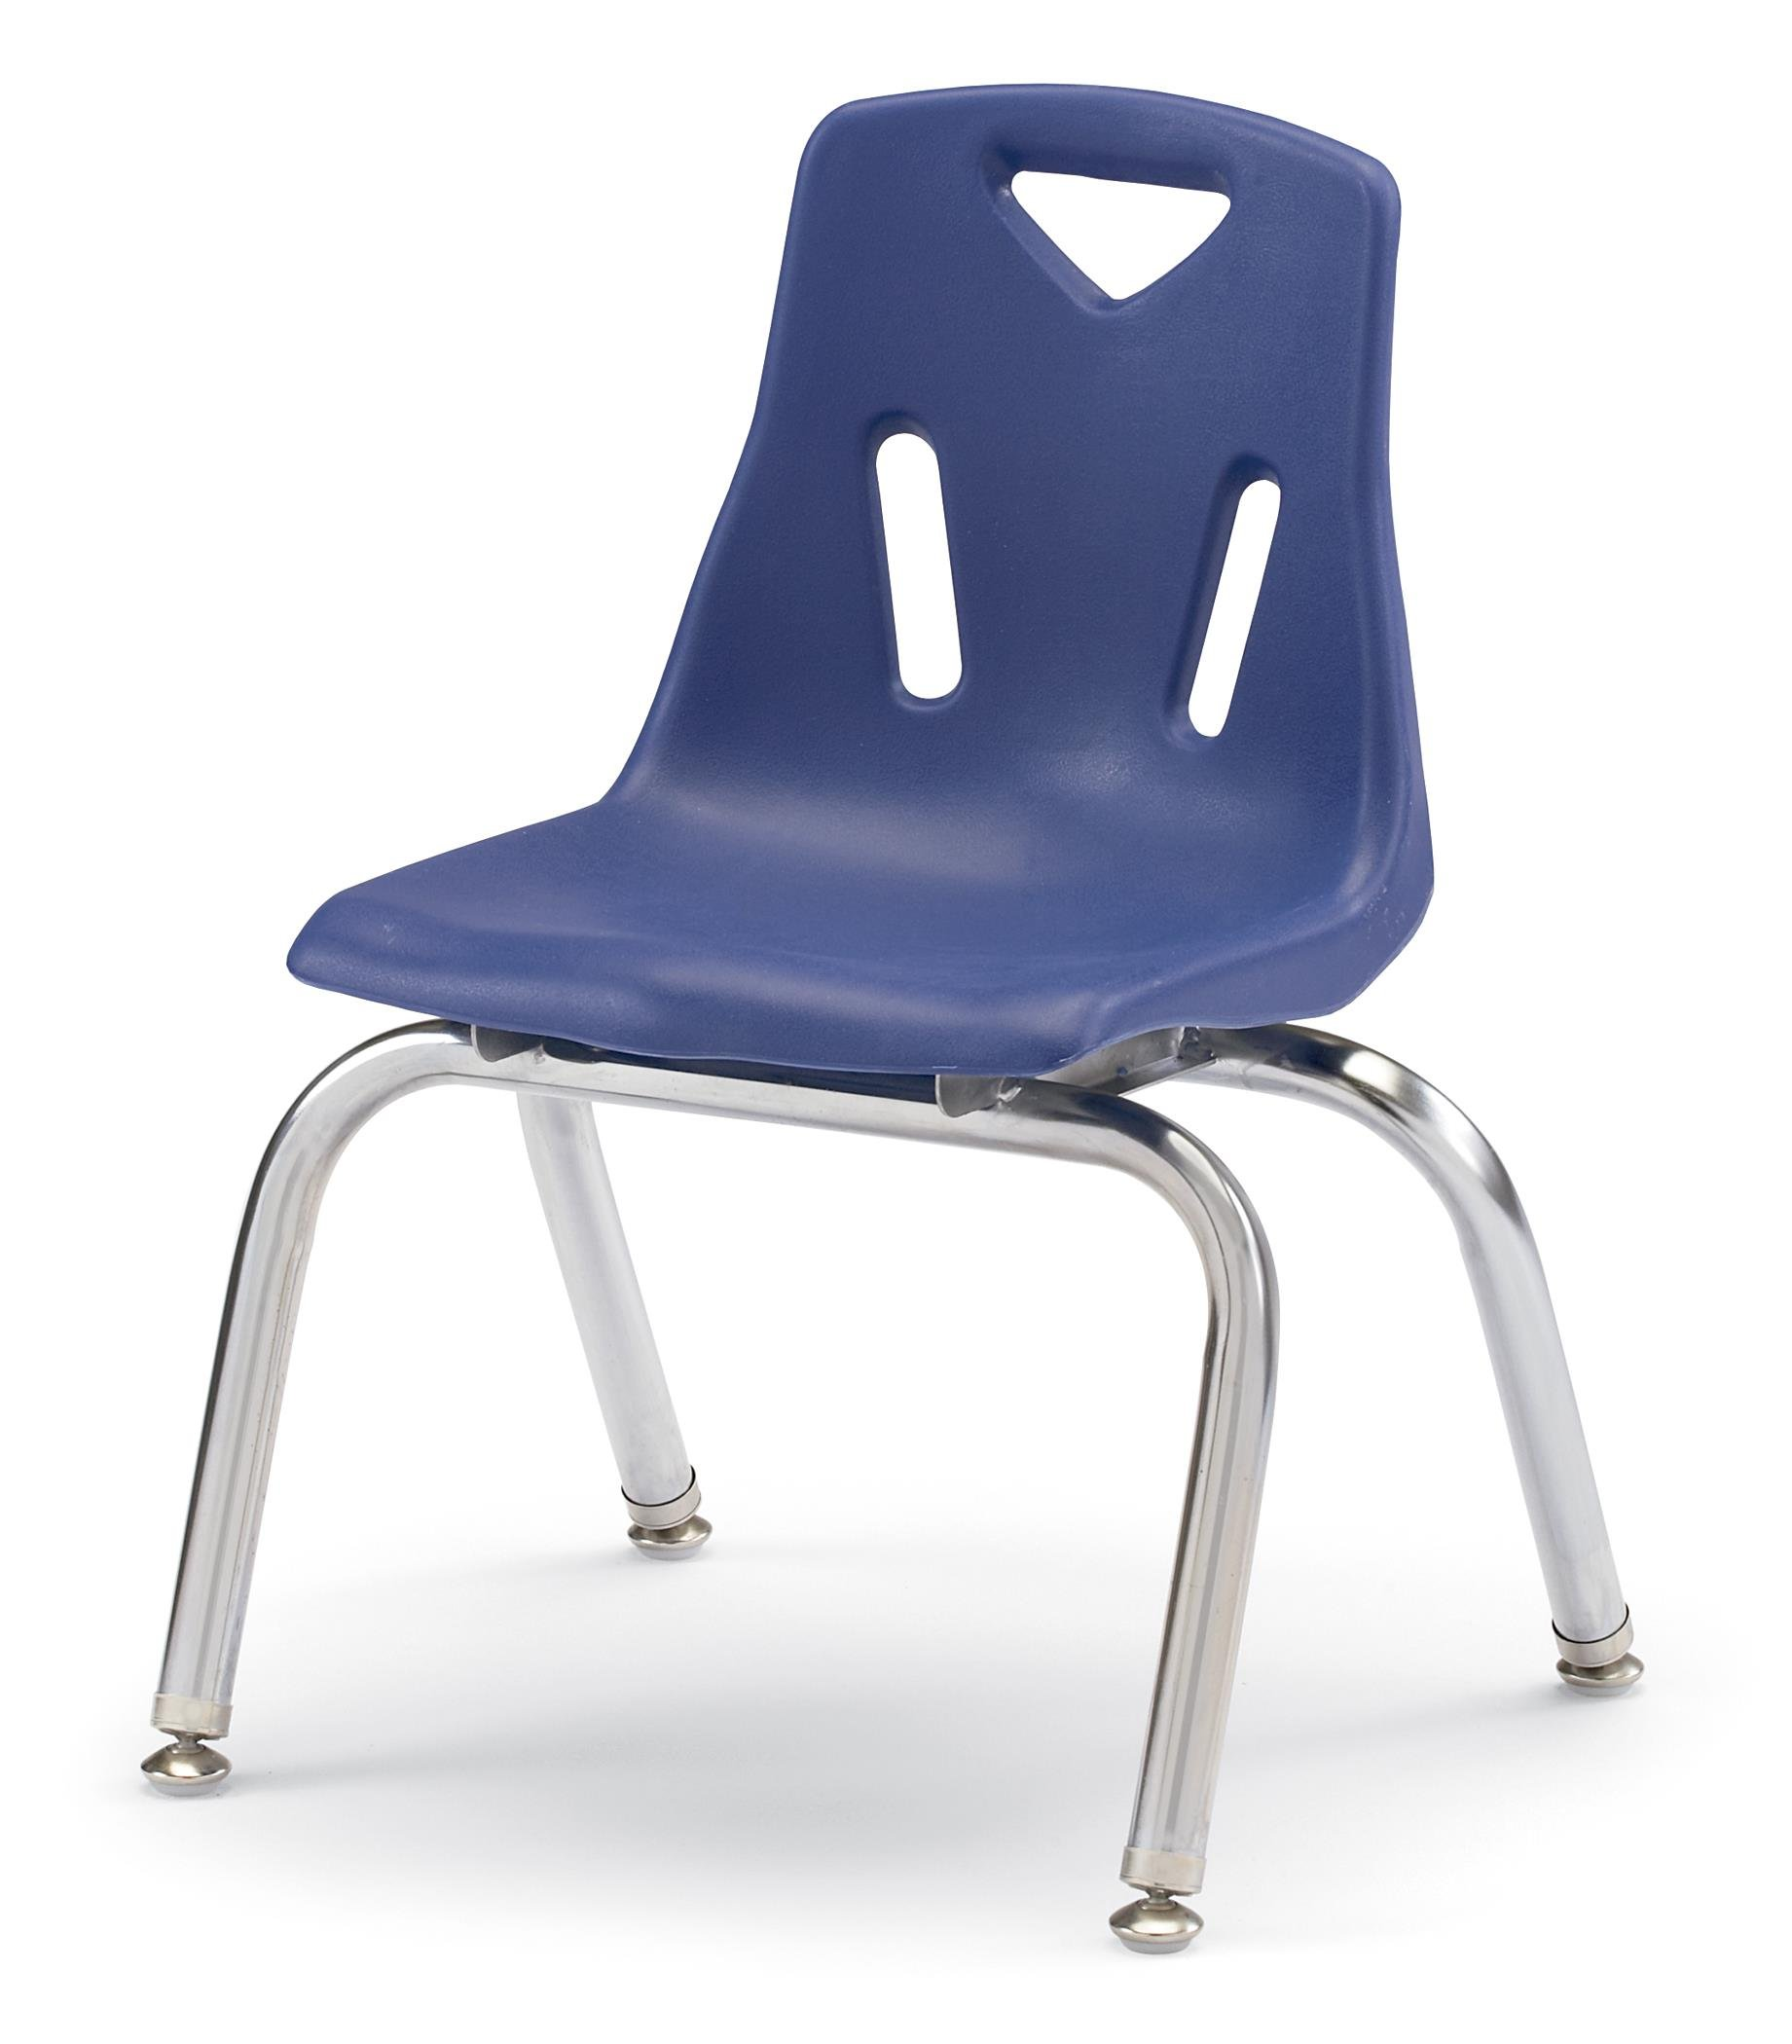 Berries 8140JC6003 Stacking Chairs with Chrome-Plated Legs, 10'' Ht, 15.5'' Height, 20'' Wide, 13.5'' Length, Blue (Pack of 6)